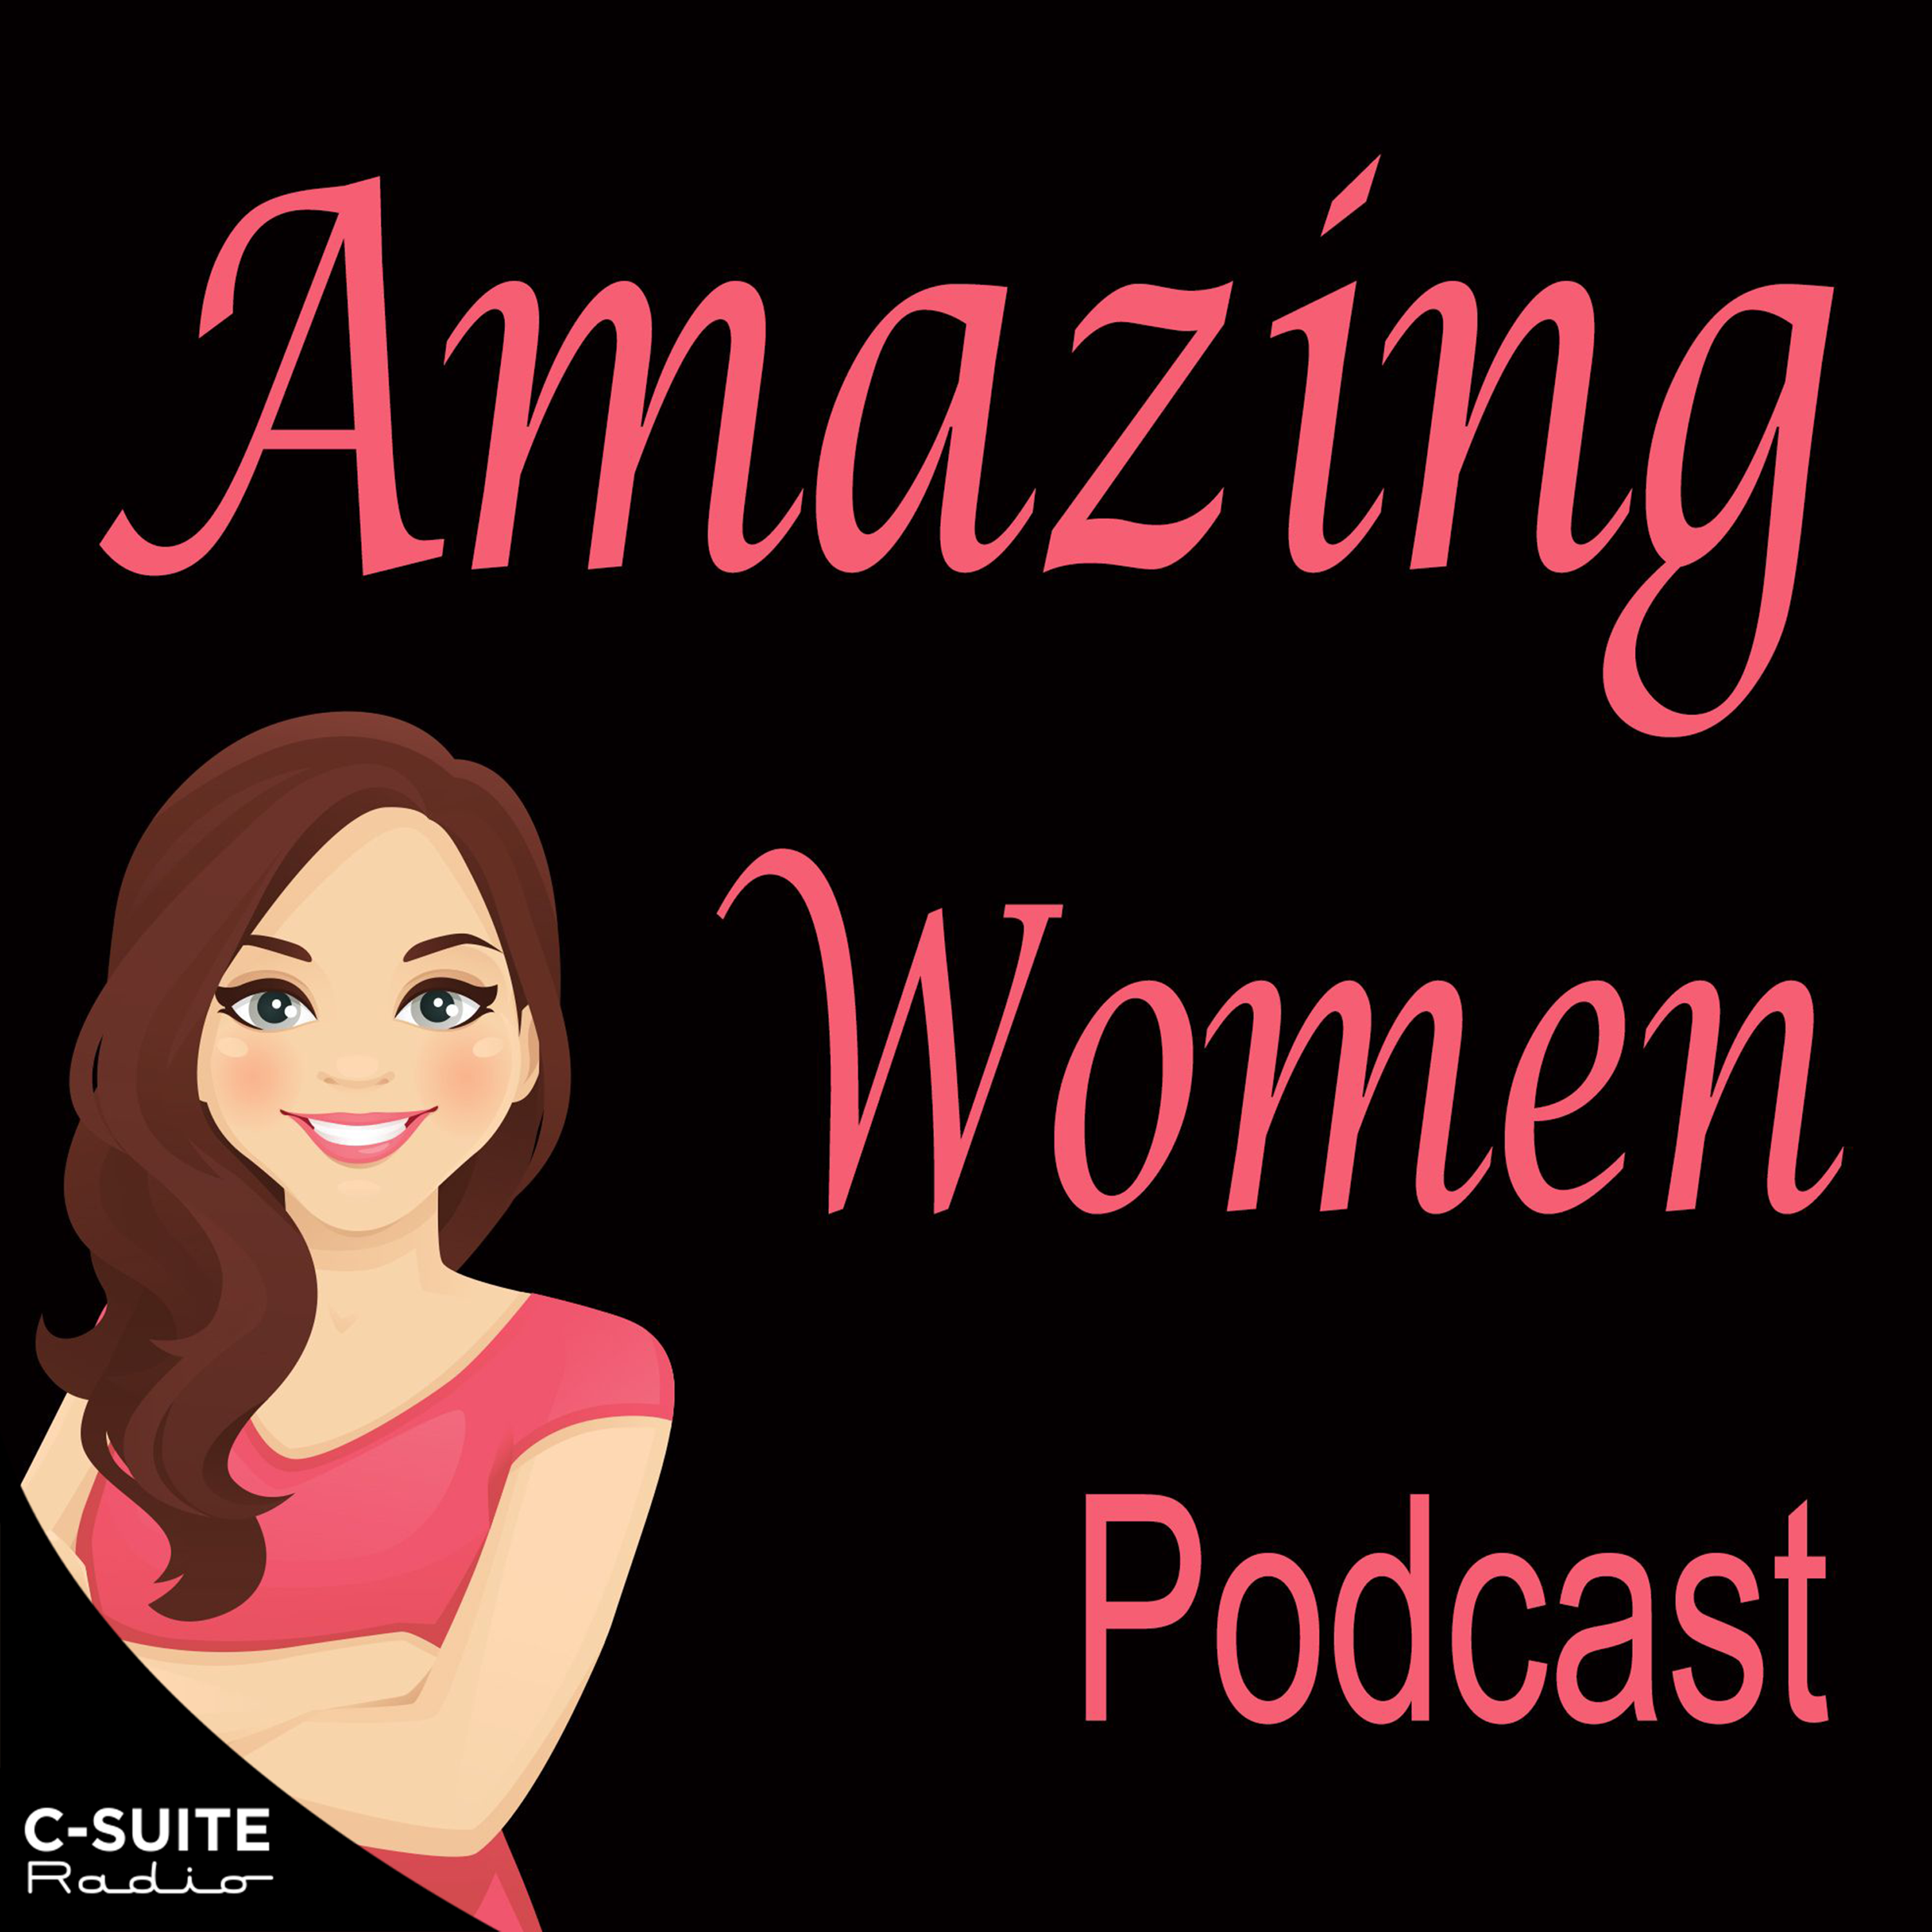 The Amazing Women Podcast